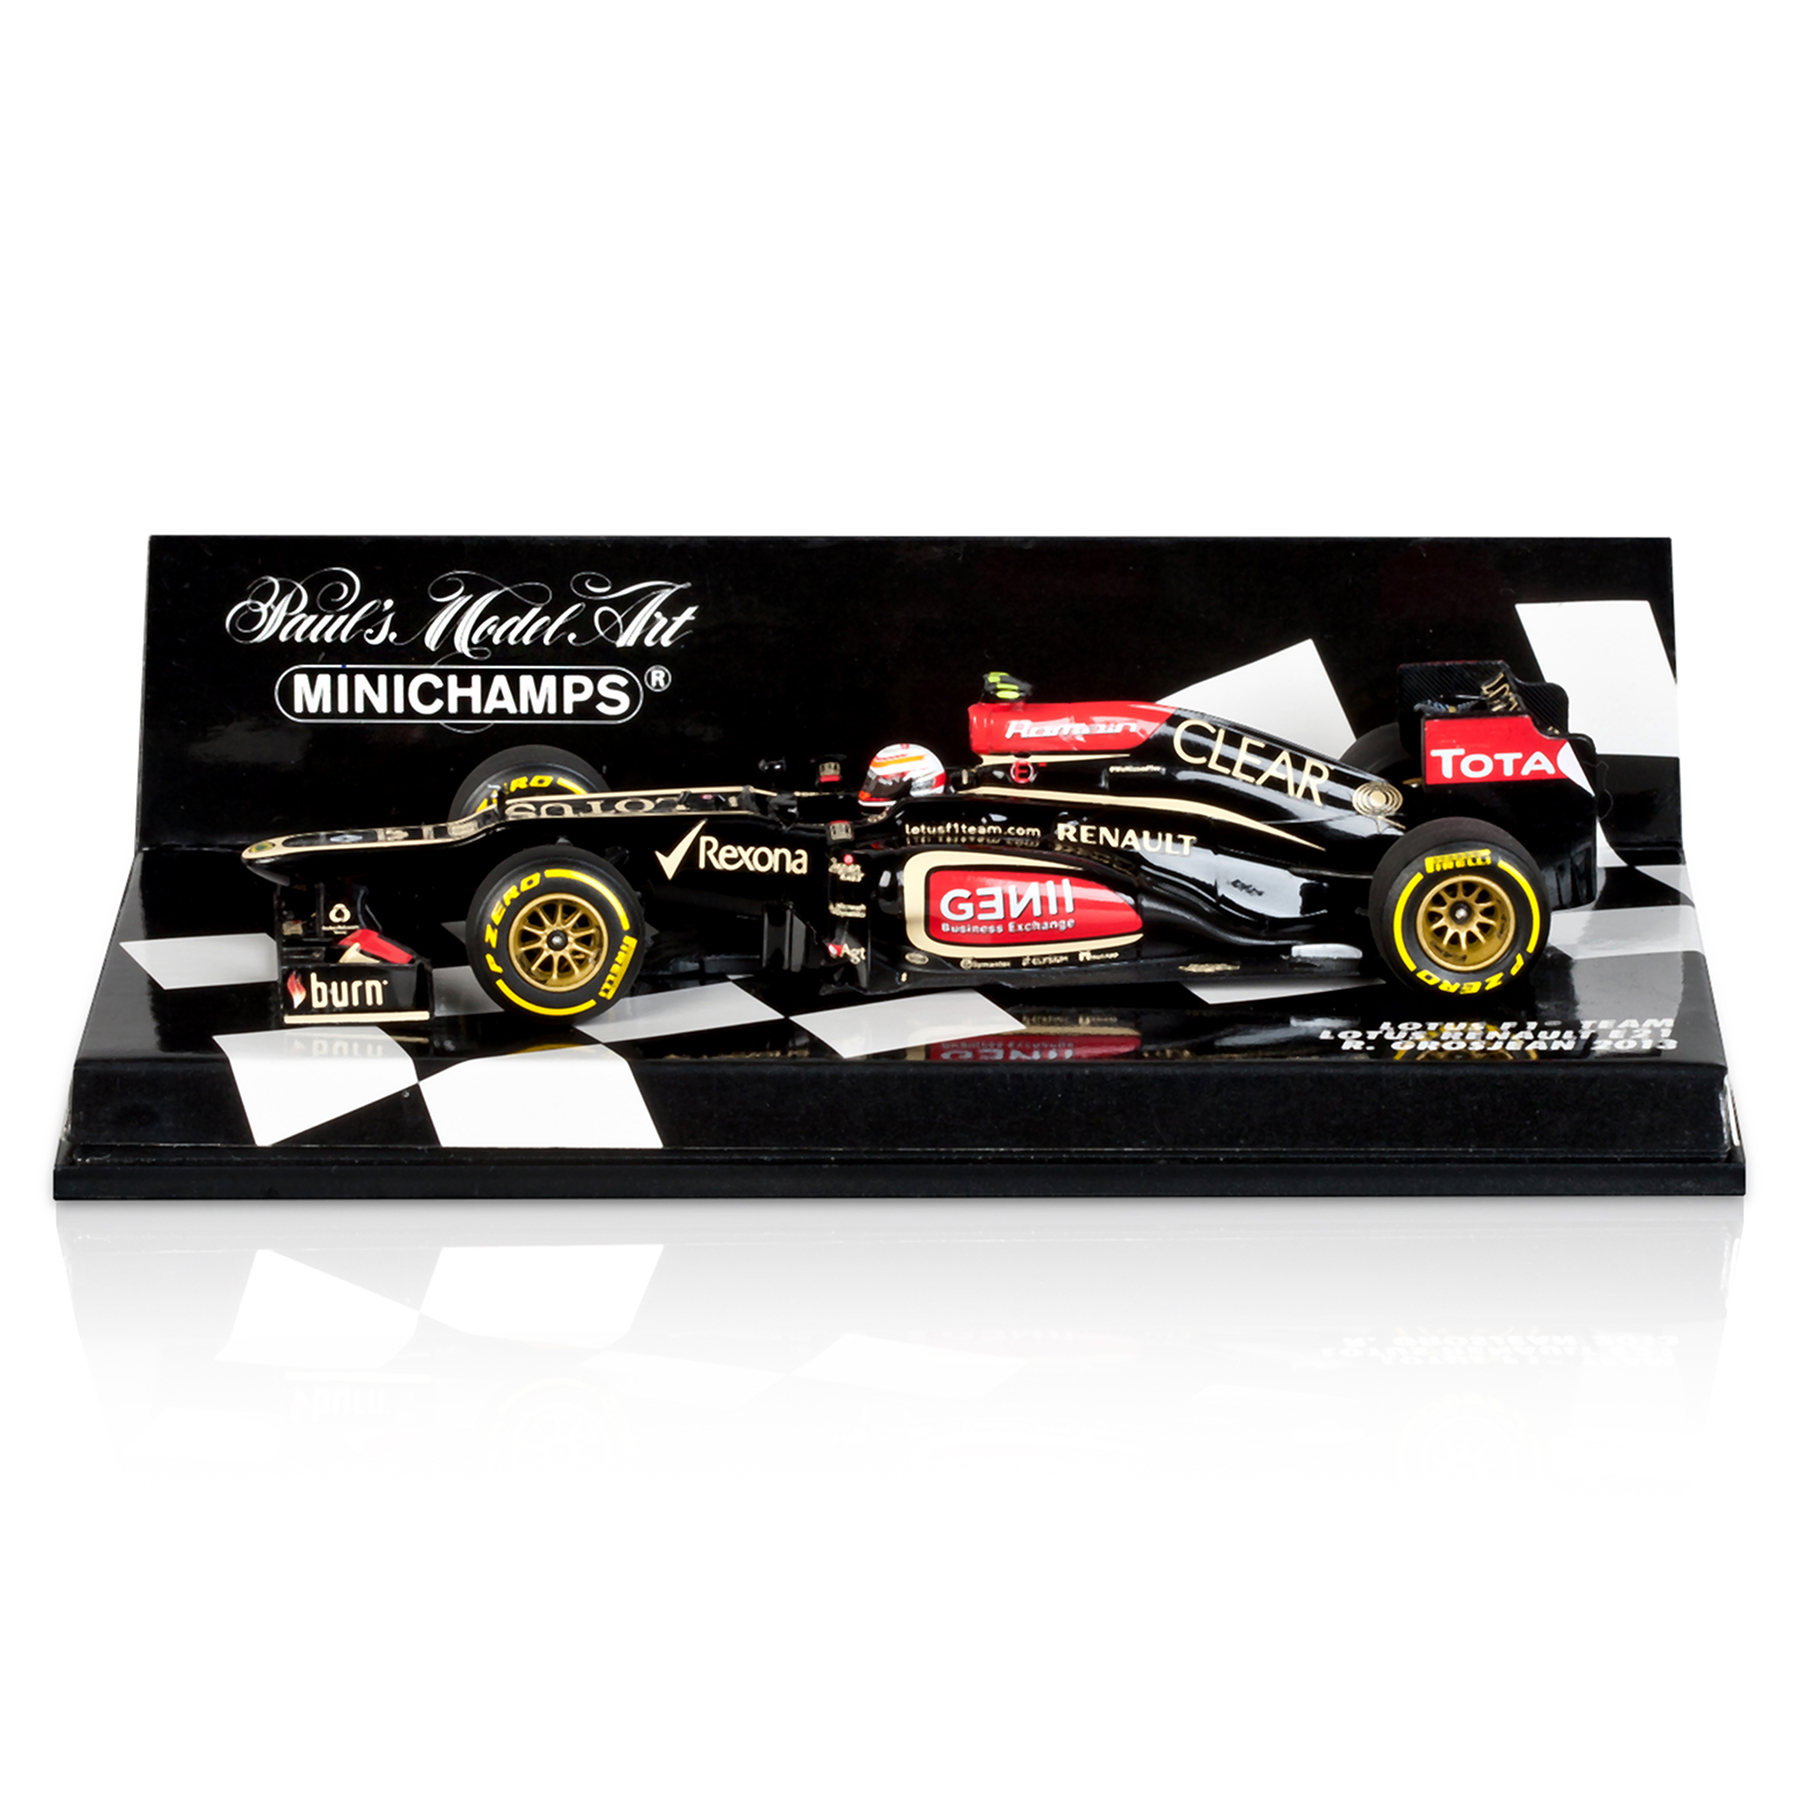 Lotus F1 Team Renault E21 Romain Grosjean 2013 1:43 Scale